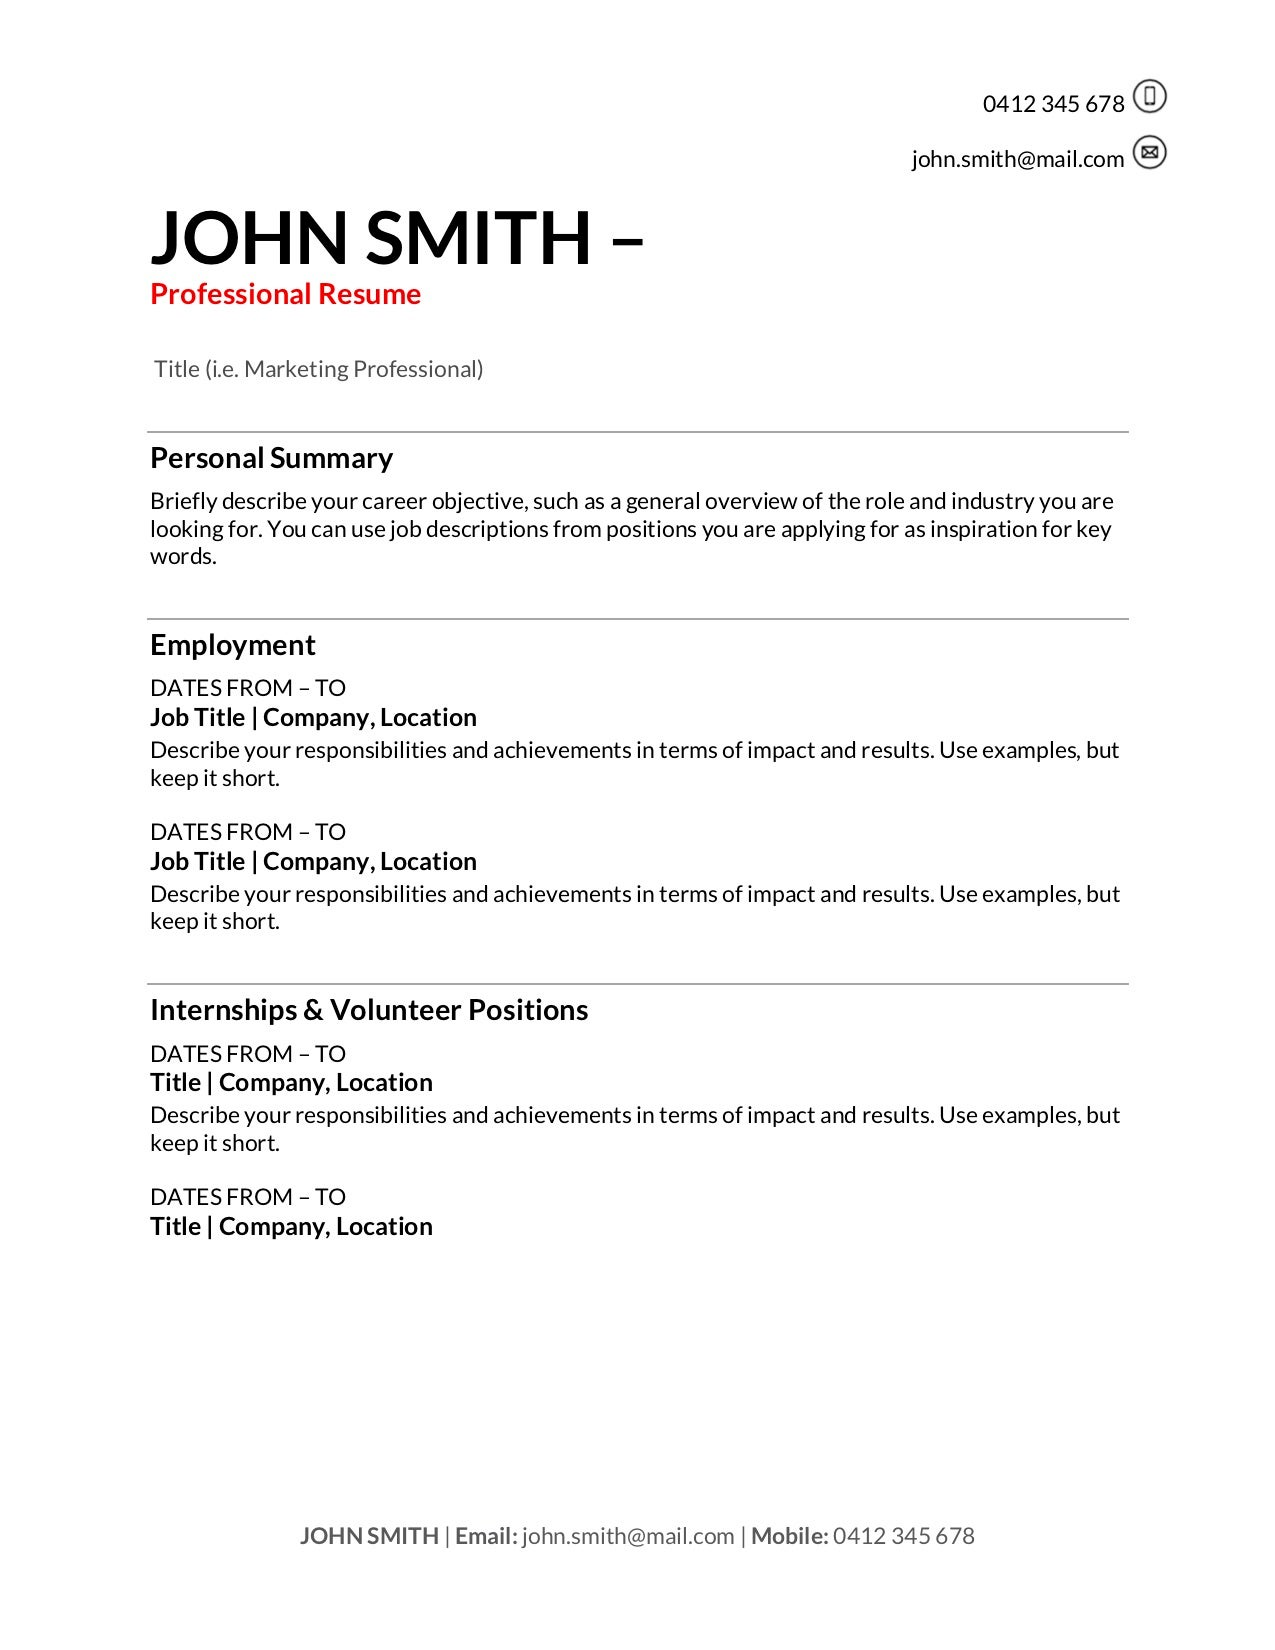 free resume templates to write in training au spreadsheet format administrative sample Resume Resume Spreadsheet Format